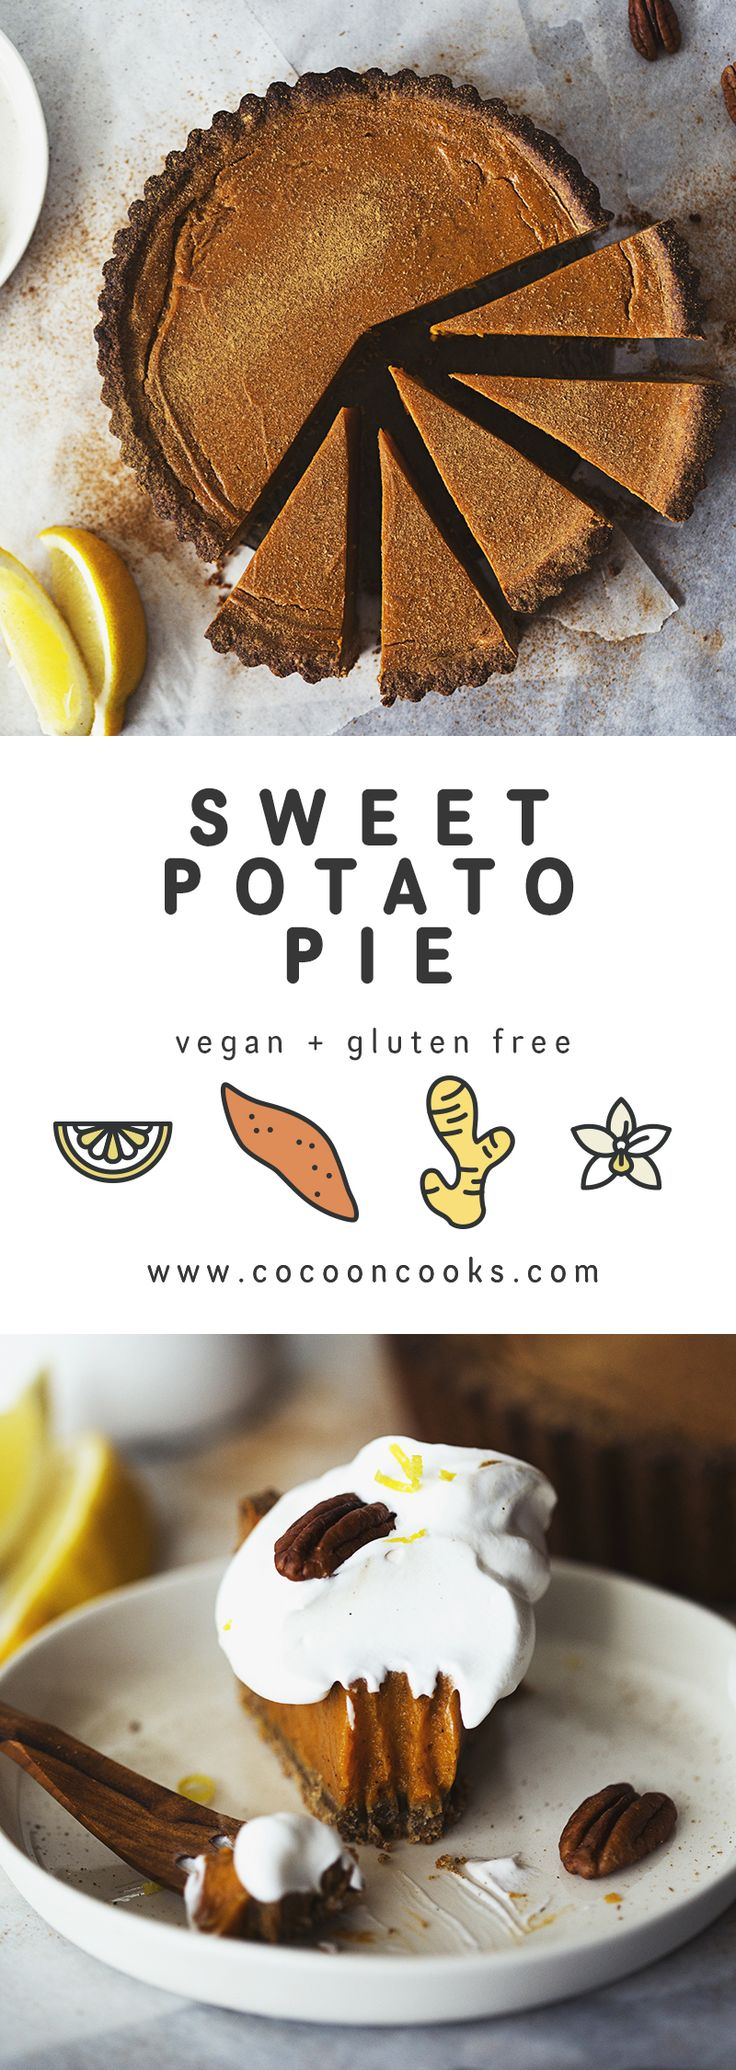 Healthy and Vegan Sweet Potato Pie, the perfect dessert recipe for Christmas! #plantbased